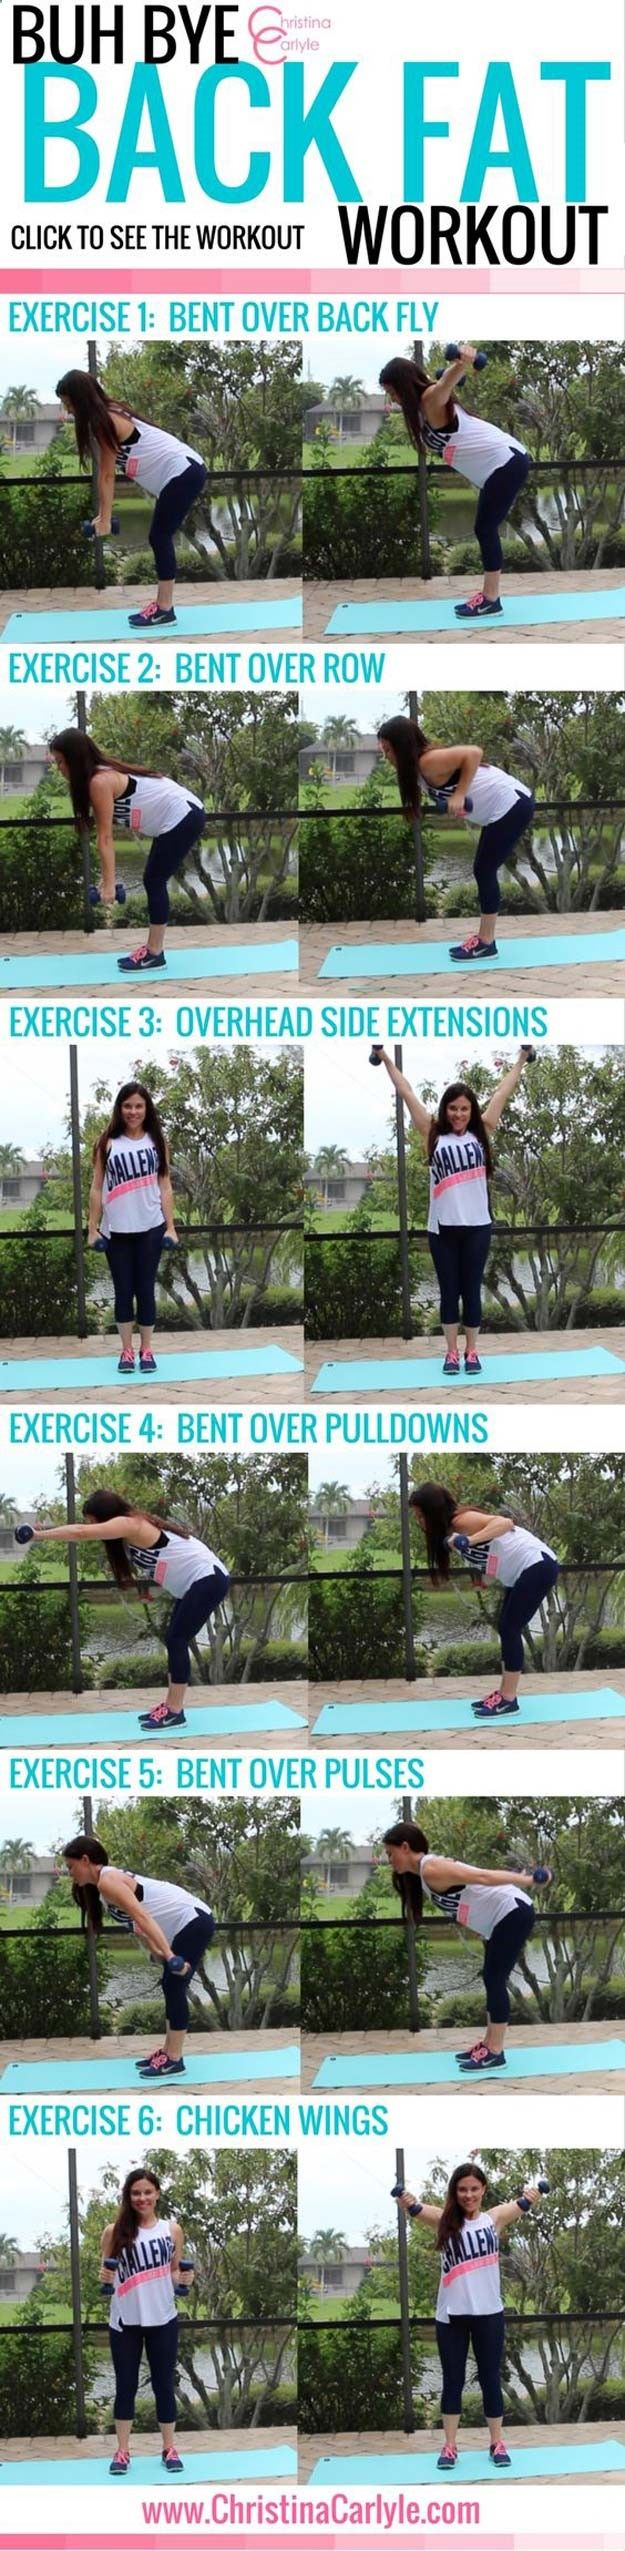 Best Exercises for Abs - Workouts for women - Exercises for Back Fat - Best Ab Exercises And Ab Workouts For A Flat Stomach, Increased Health Fitness, And Weightless. Ab Exercises For Women, For Men, And For Kids. Great With A Diet To Help With Losing Wei eburnfat.com